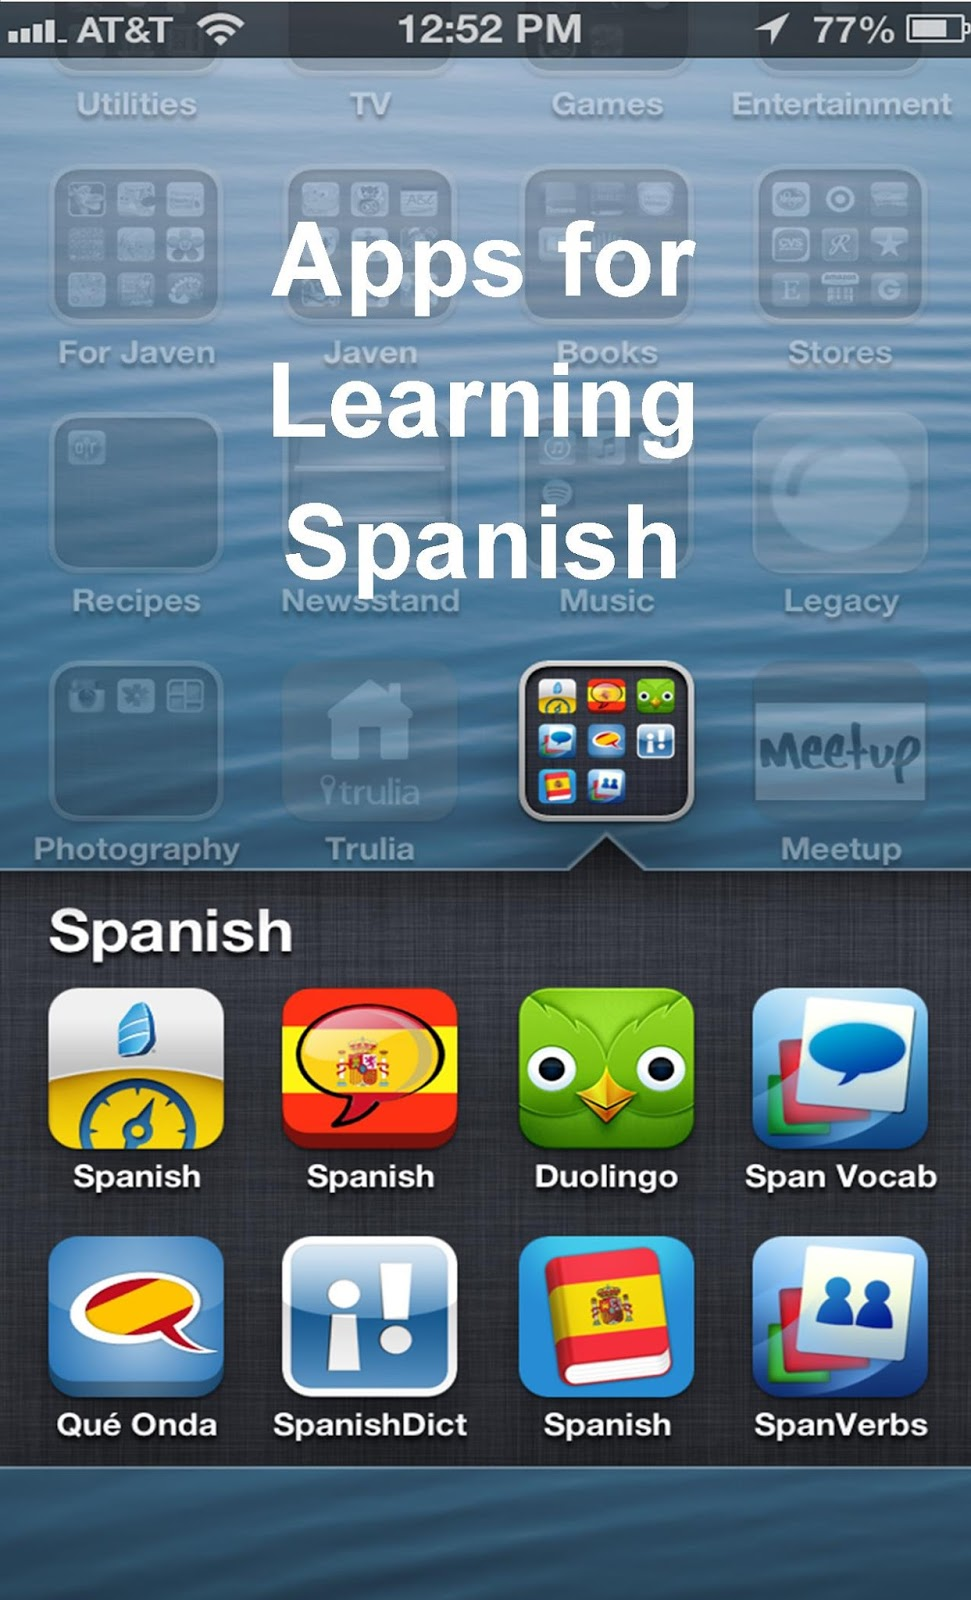 My favorite apps for learning spanish amanda g whitaker Iplan app